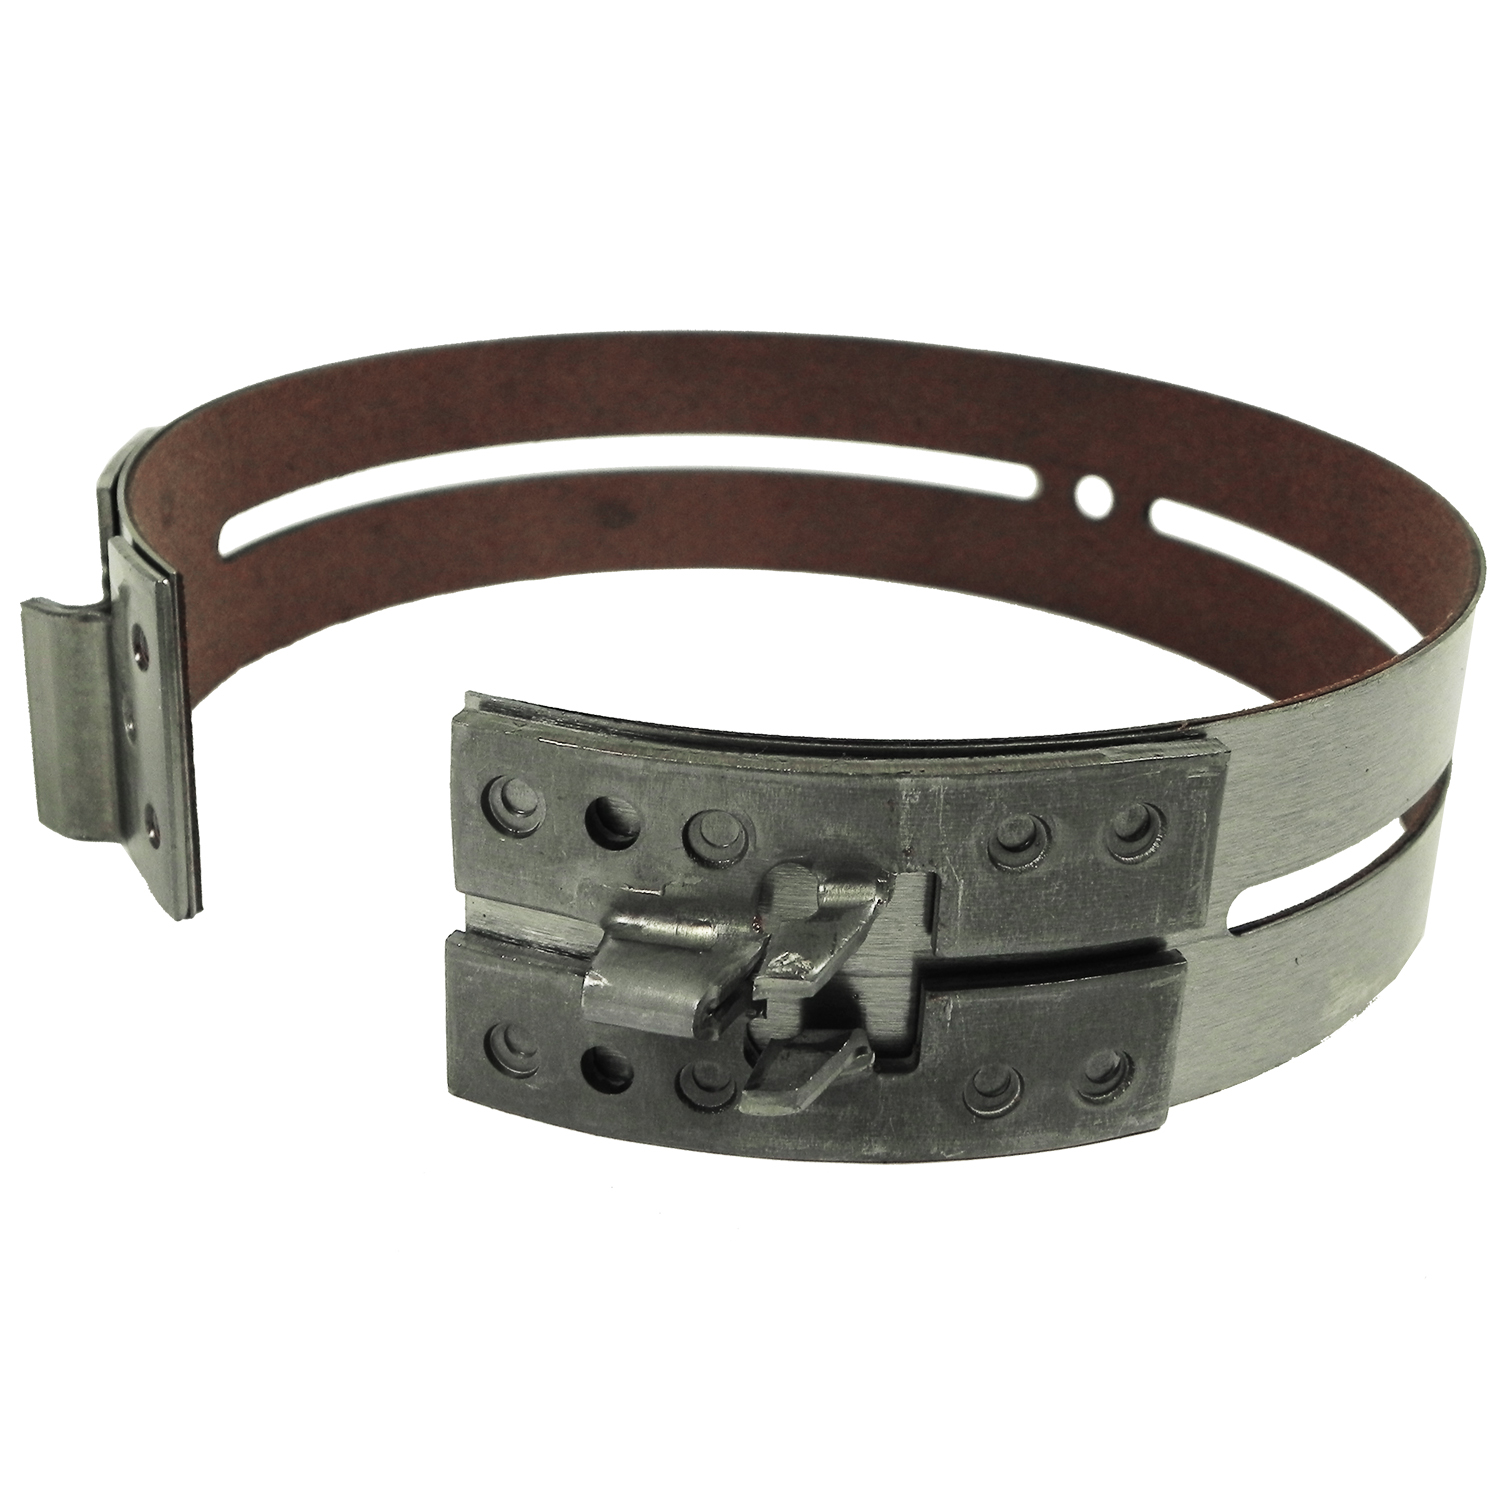 "RB40961 | 1960-2003 Intermediate Heavy Duty; 1.61"" (41mm) Width Transmission Band"